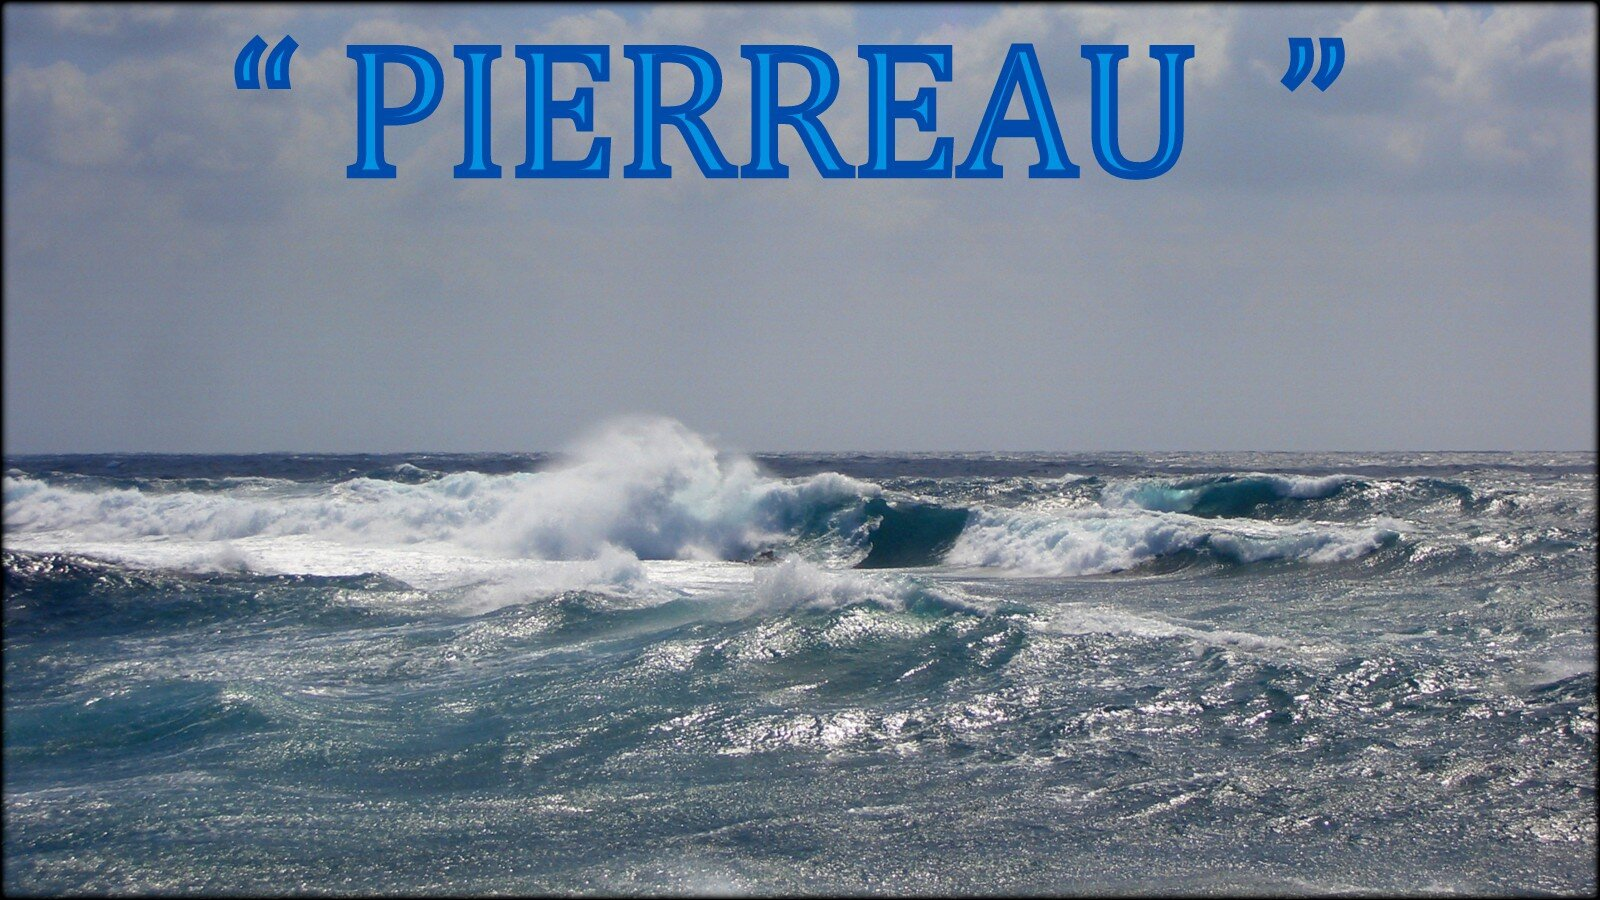 PIERREAU__SPOT__100___WAVESAILING_